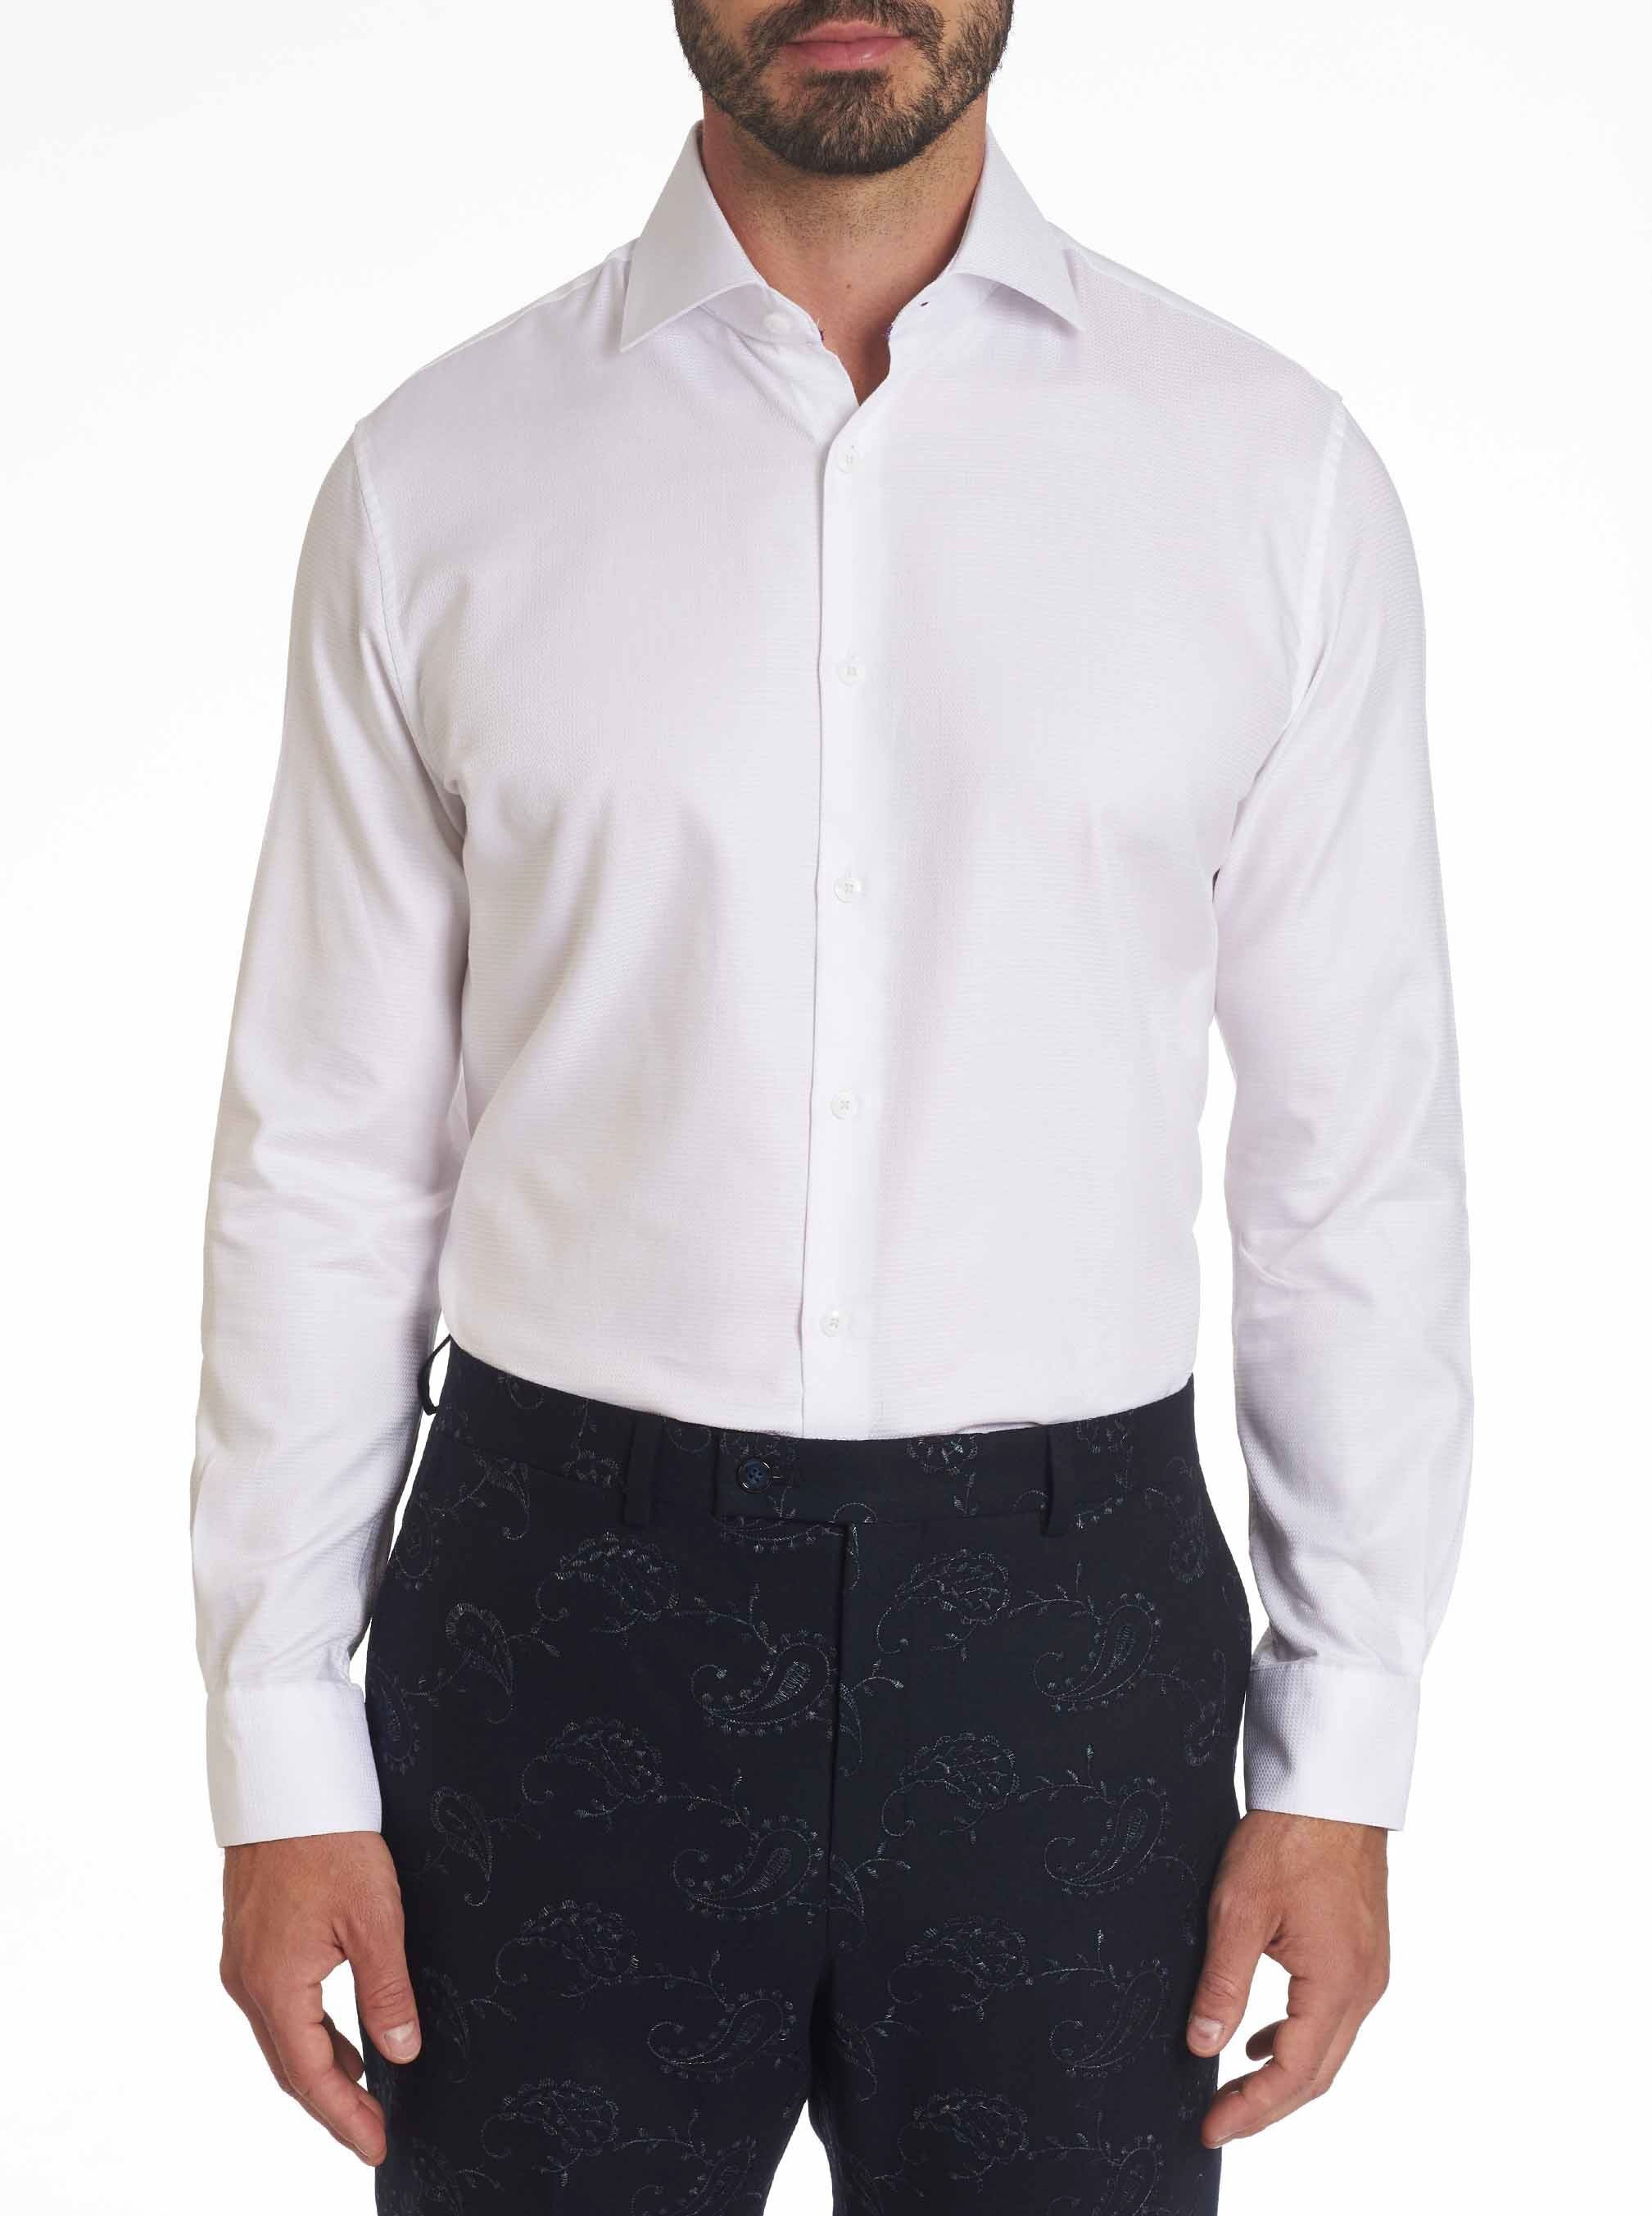 Robert Graham - Rosco - White Dress Shirt